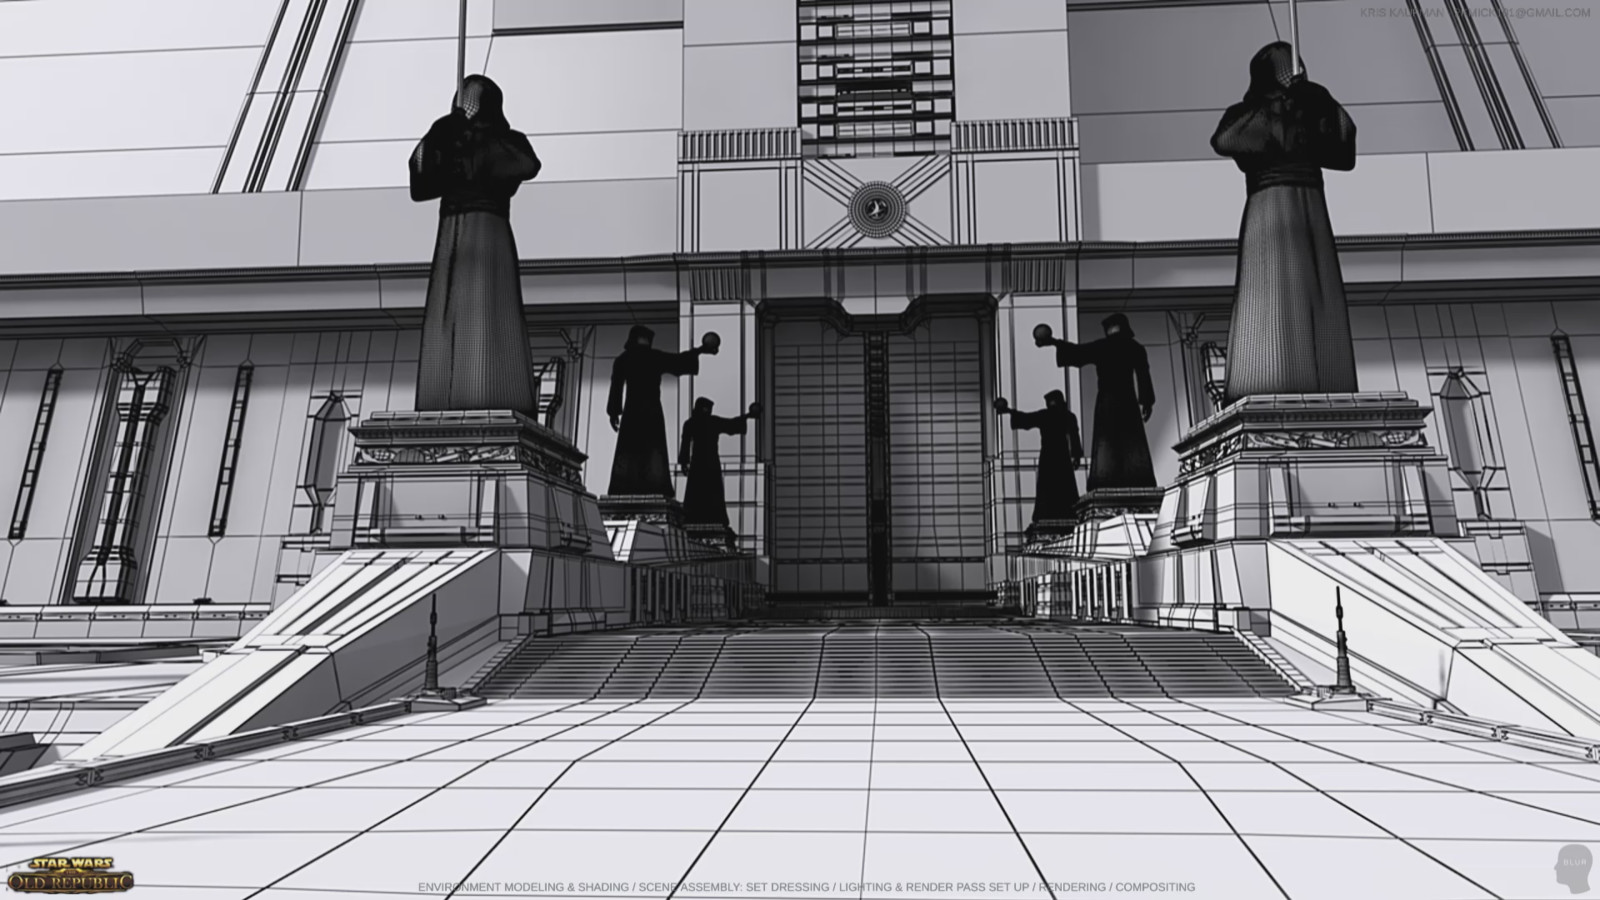 Star Wars: The Old Republic: Wireframe of Environment Modeling